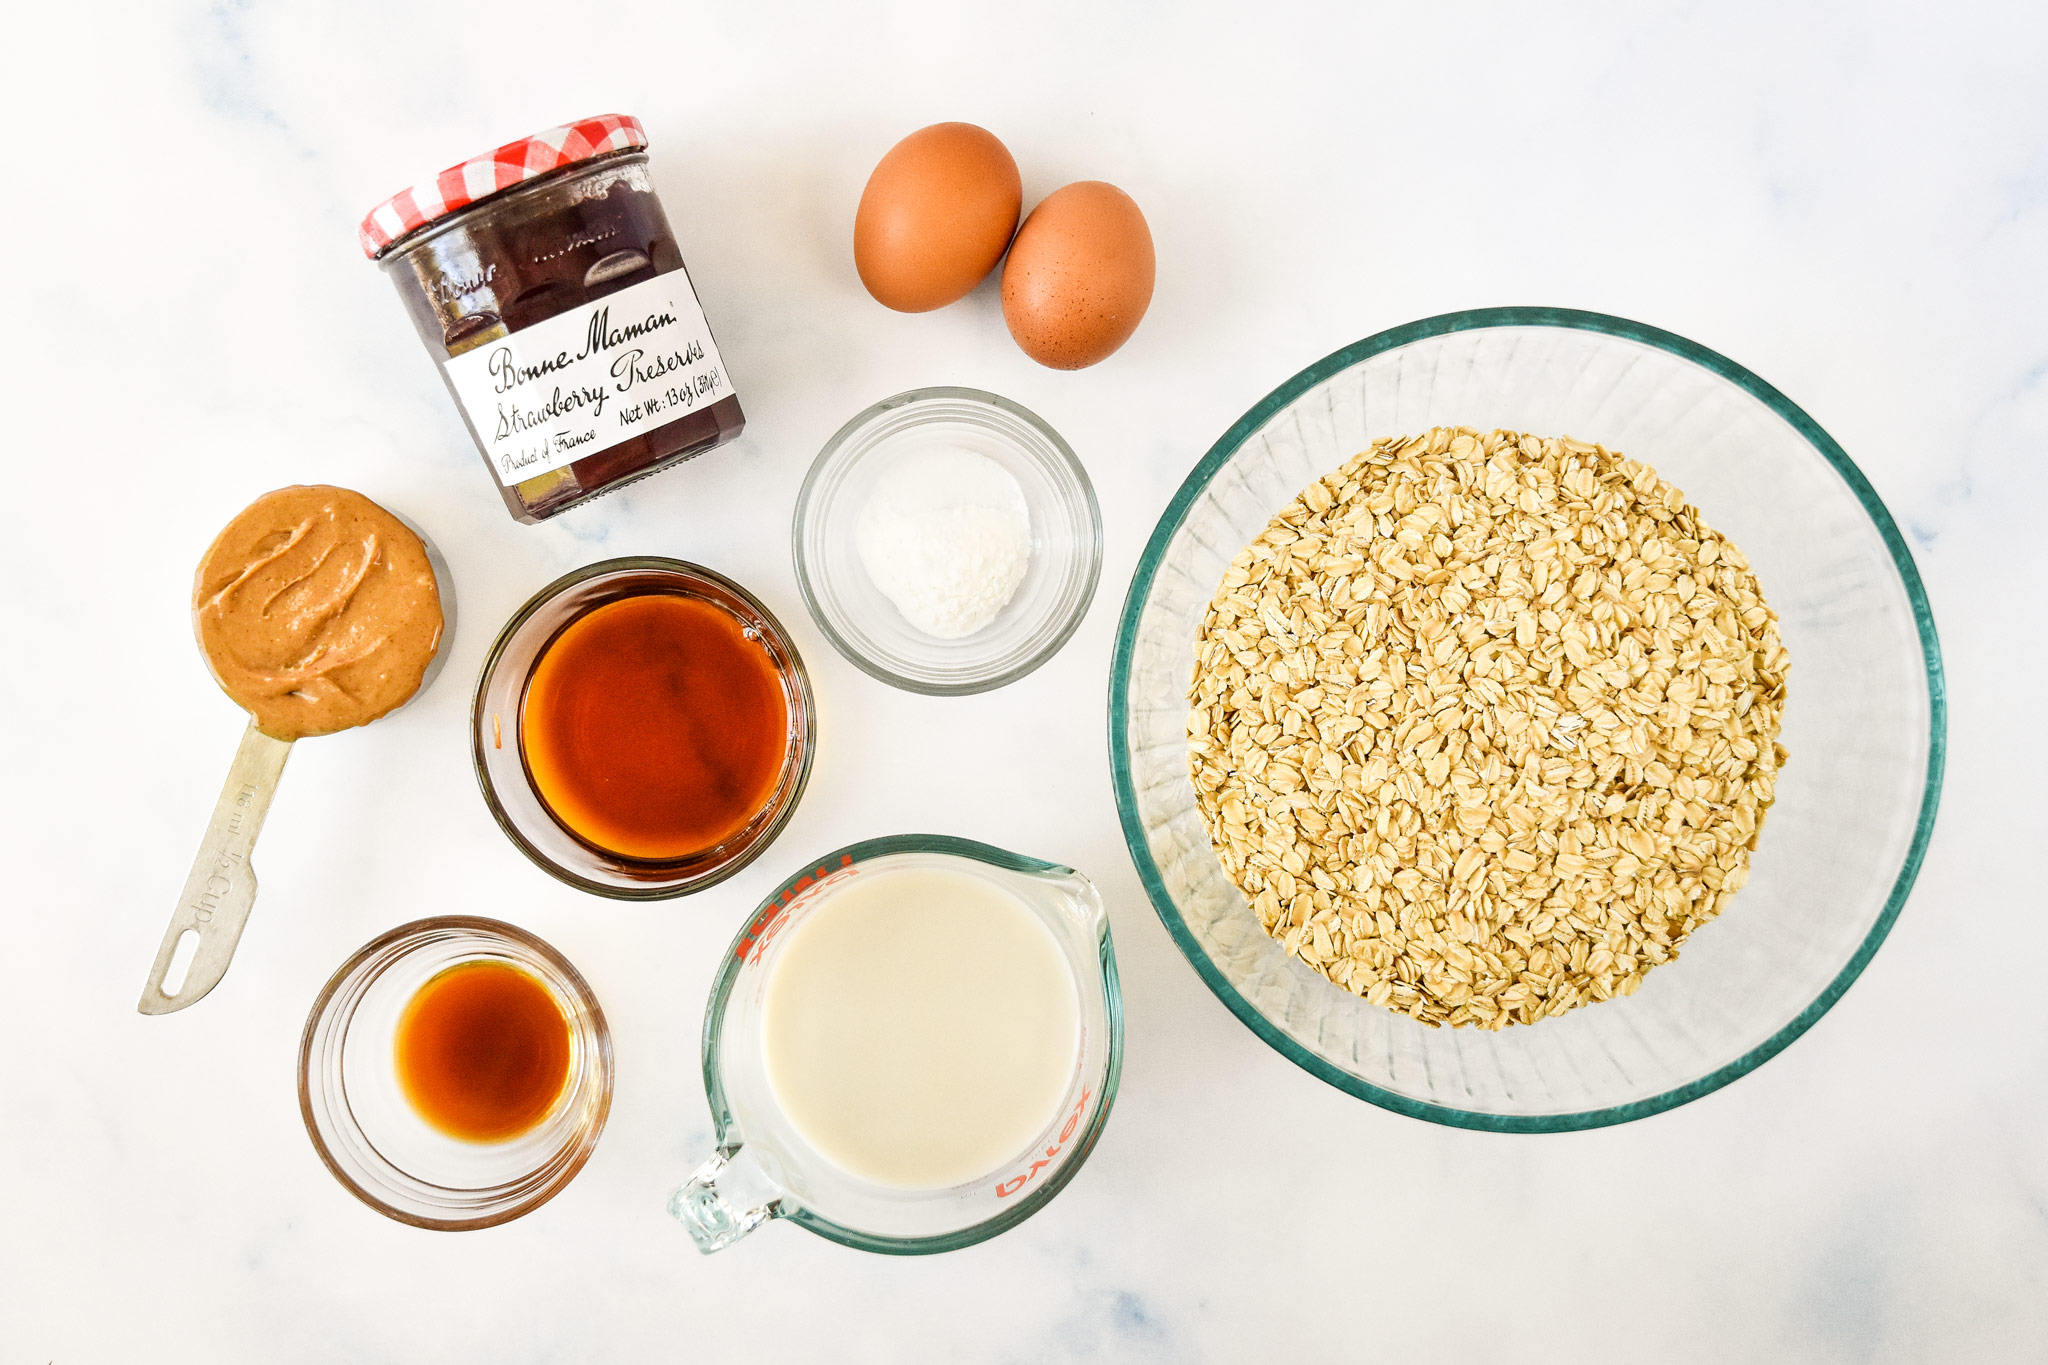 ingredients on a counter top for the pbj baked oatmeal cups.